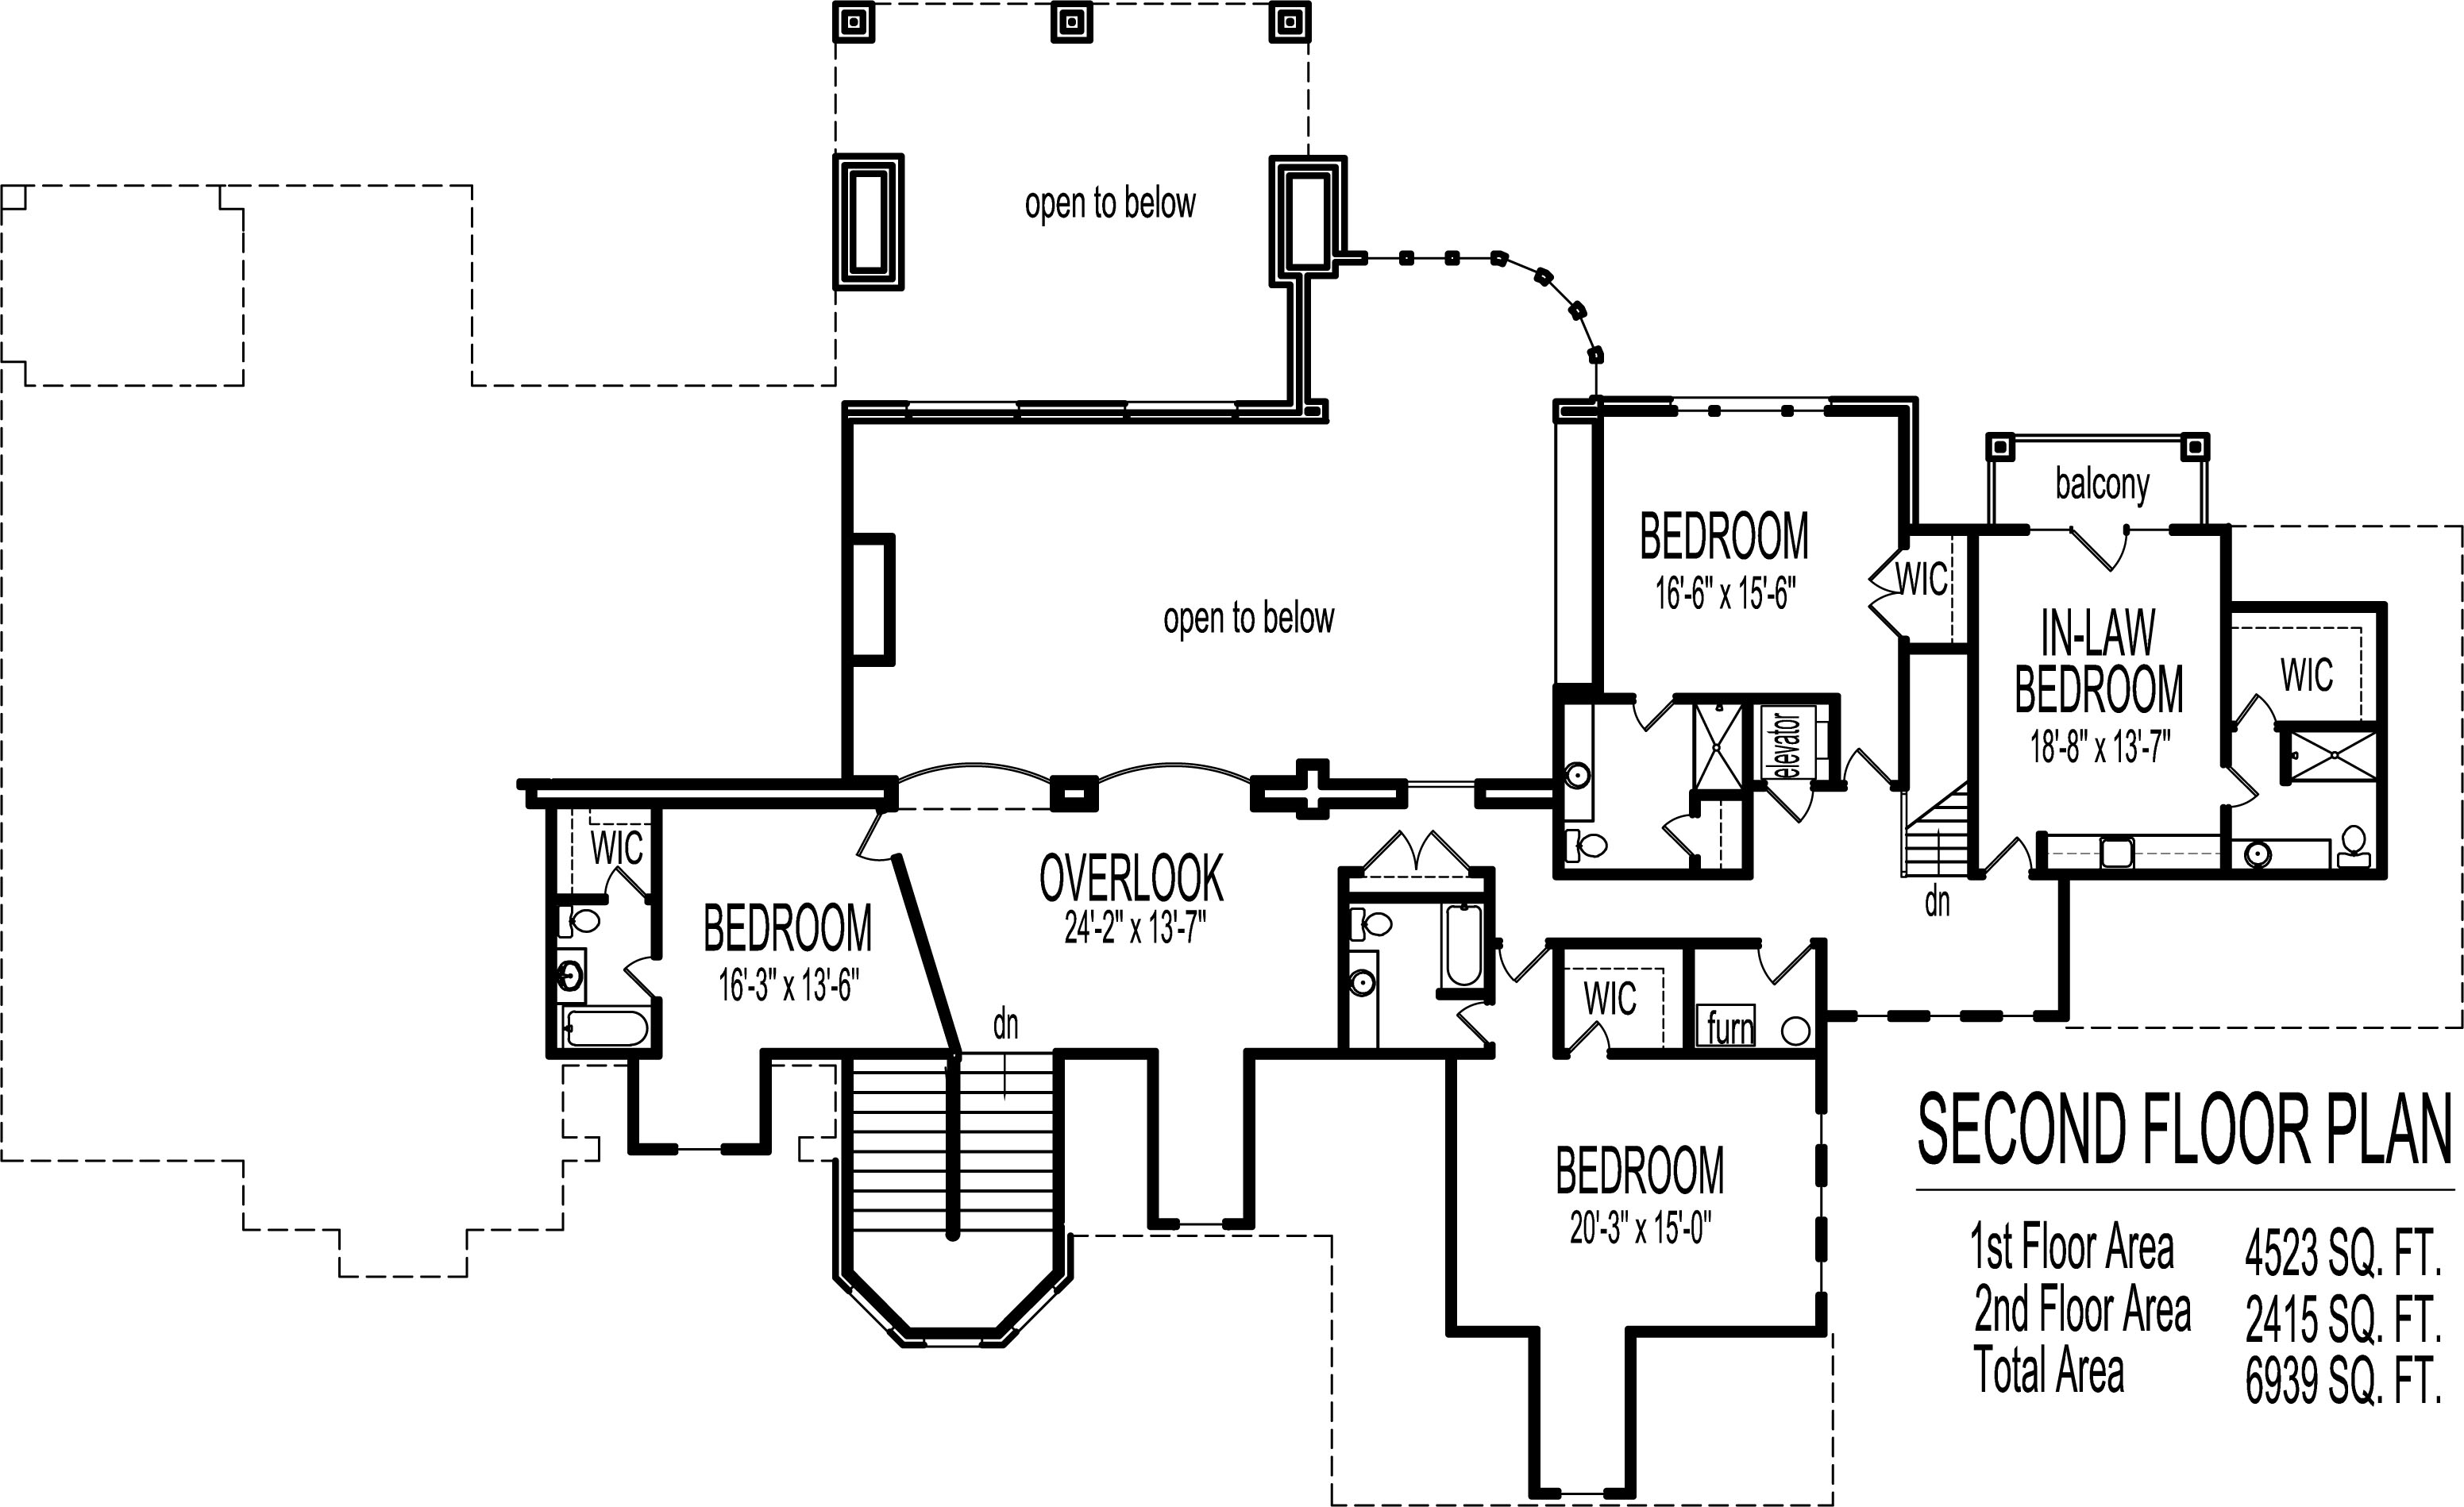 Dream house floor plans blueprints 2 story 5 bedroom large for Large home plans